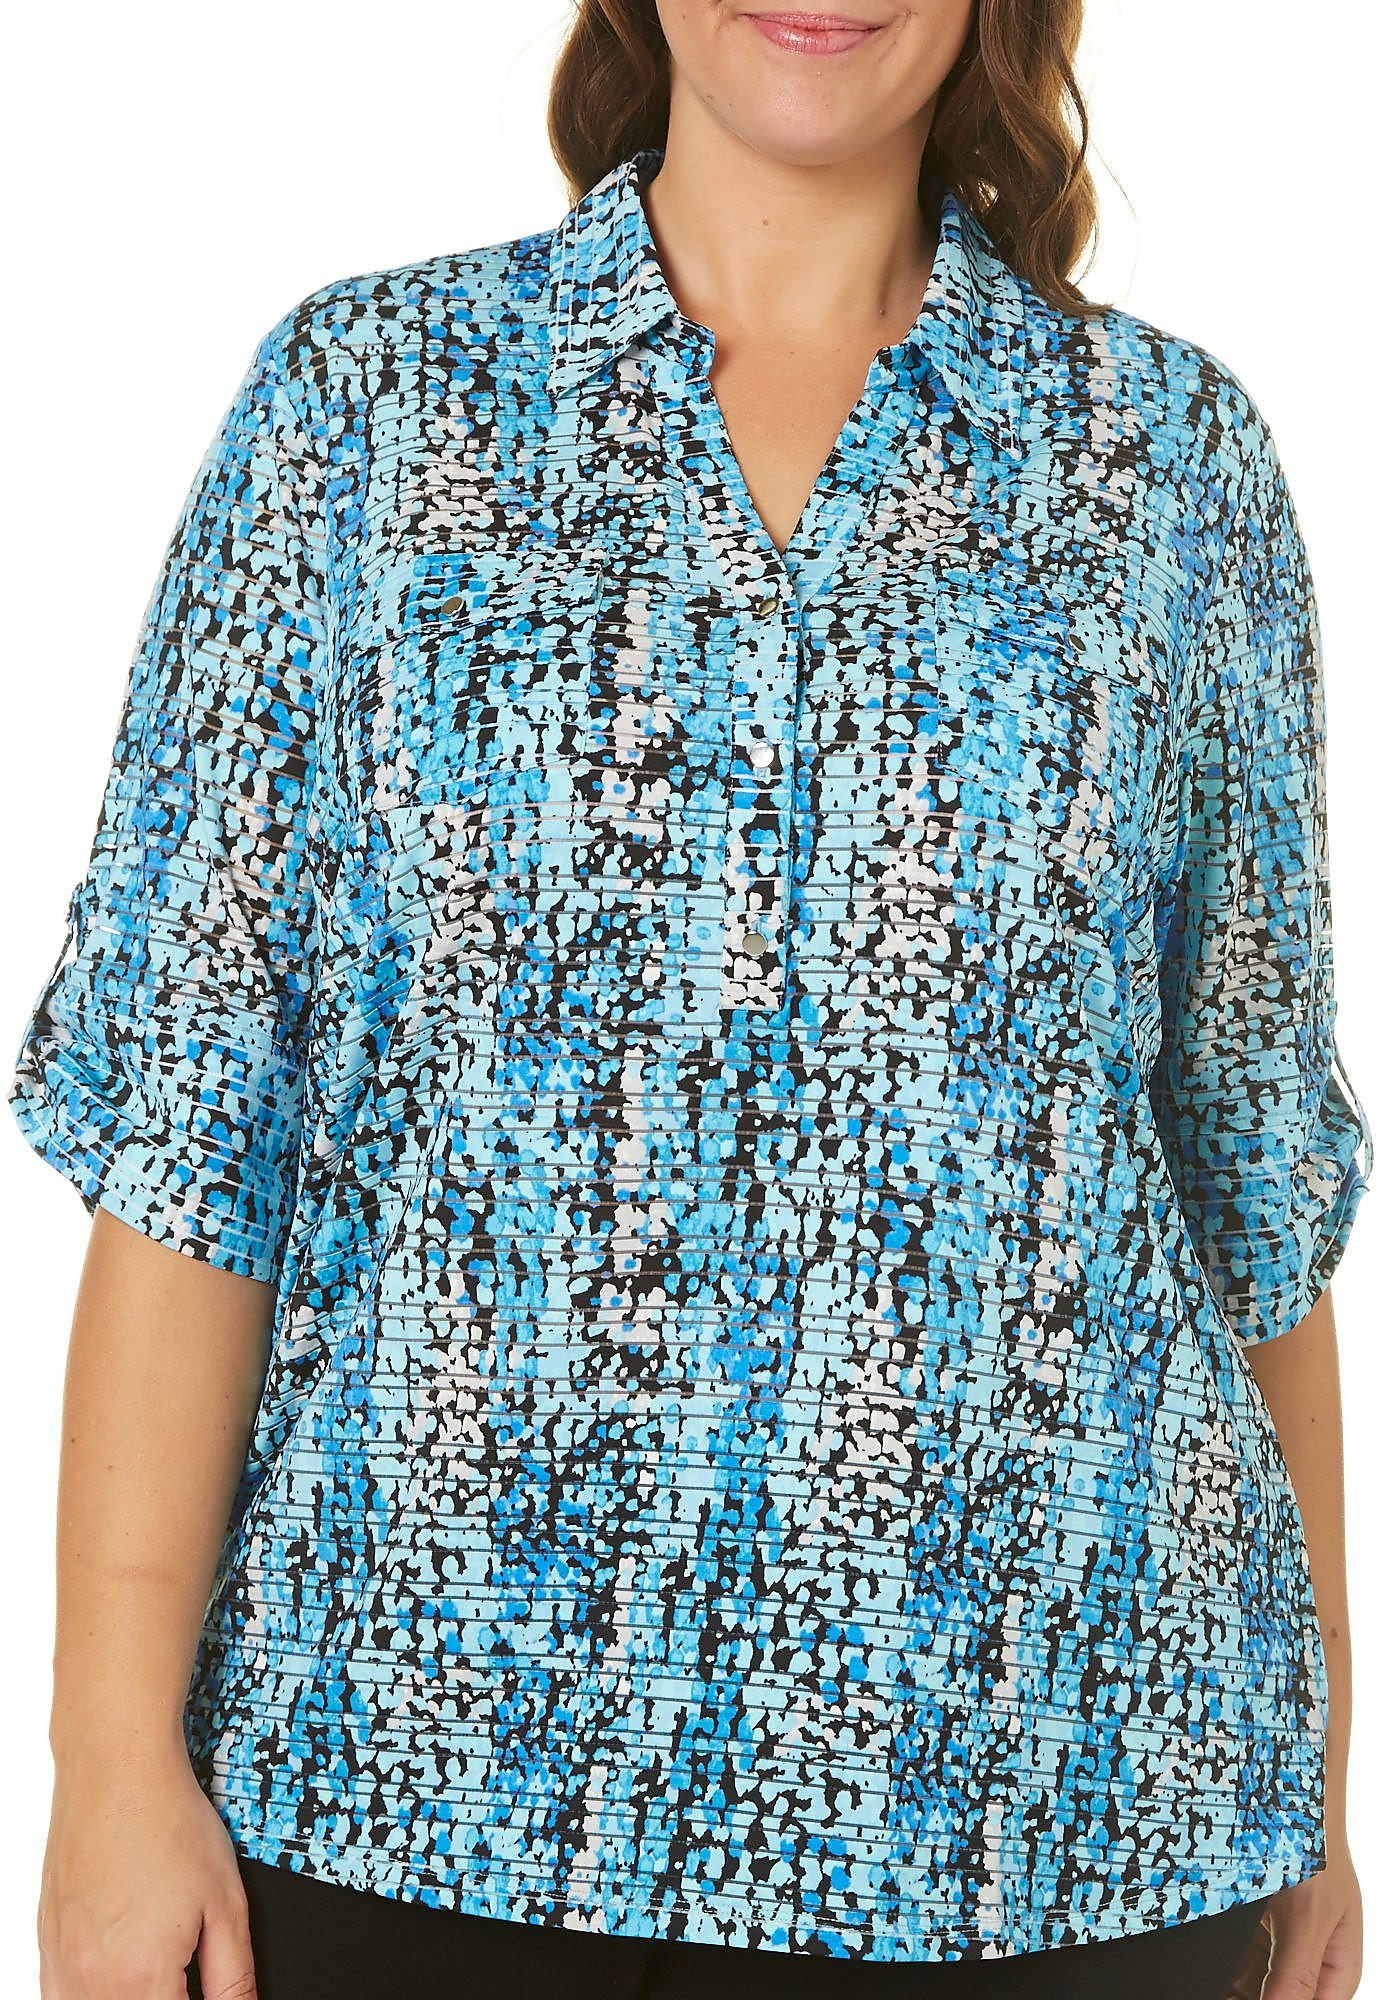 f035846176838 Details about Cathy Daniels Plus Scatter Dot Print Roll Tab Top 1X  Blue white black